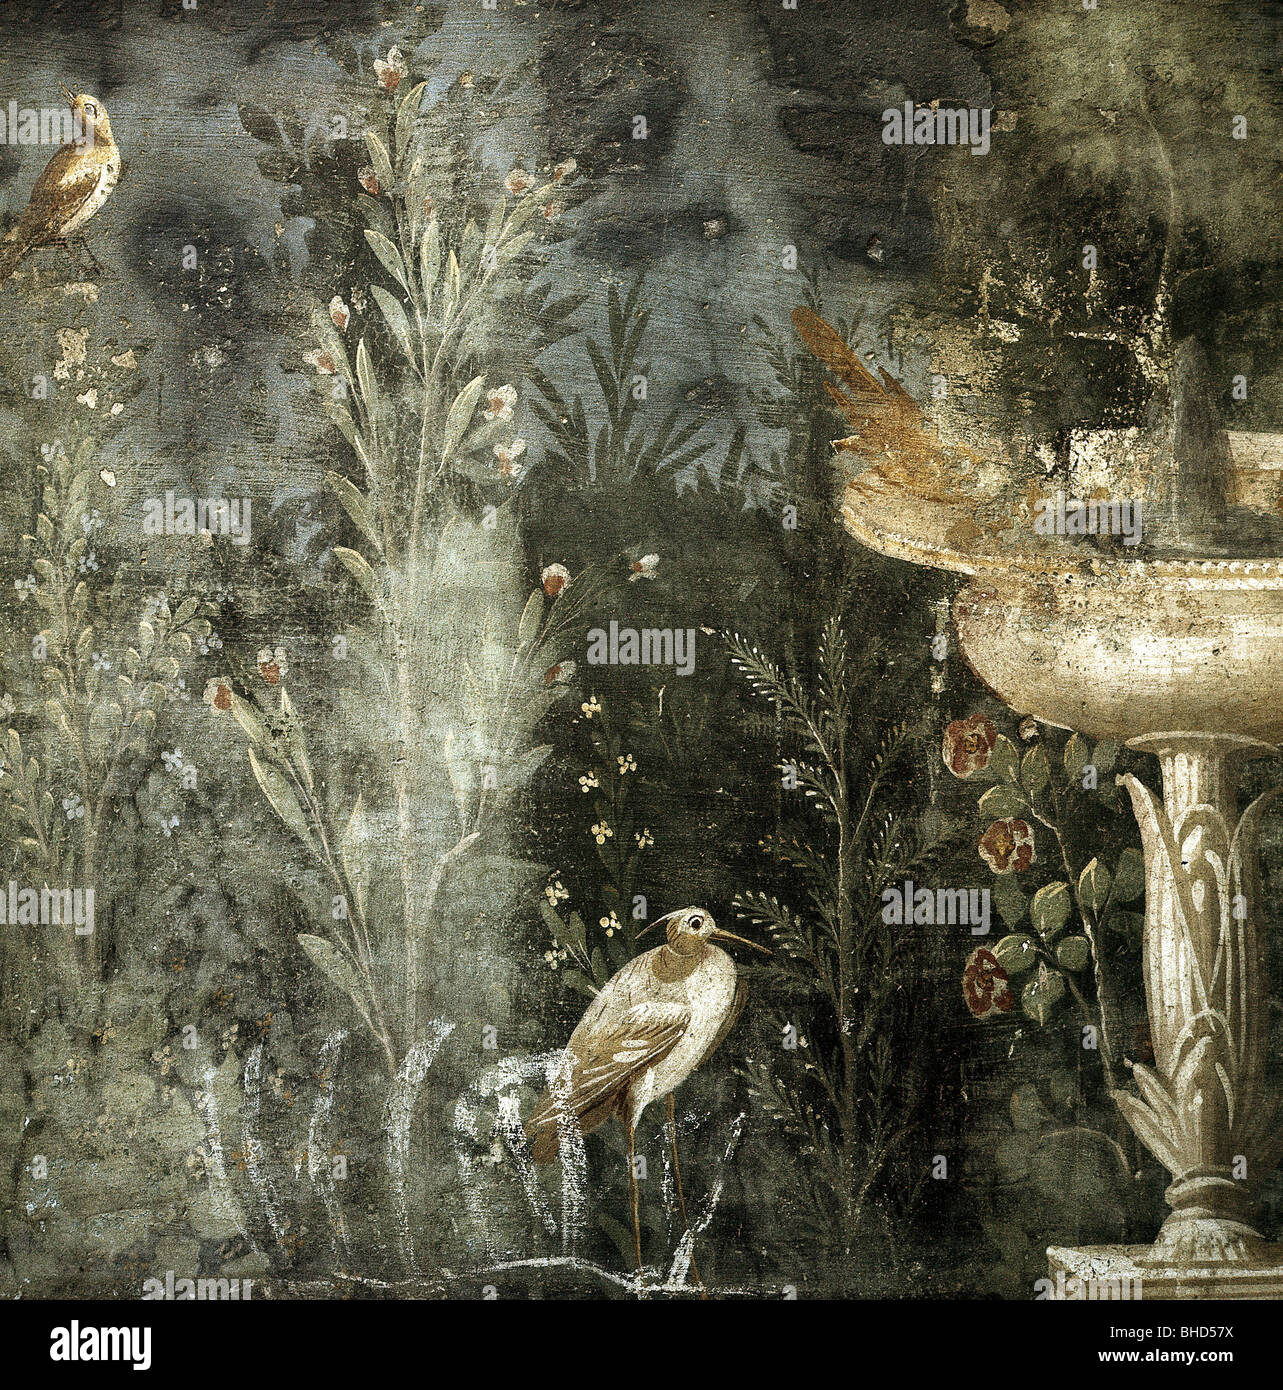 fine arts, Ancient World, Roman Empire, Pompeii, detail from a fresco, garden scene, House of Venus, Italy, historic, - Stock Image